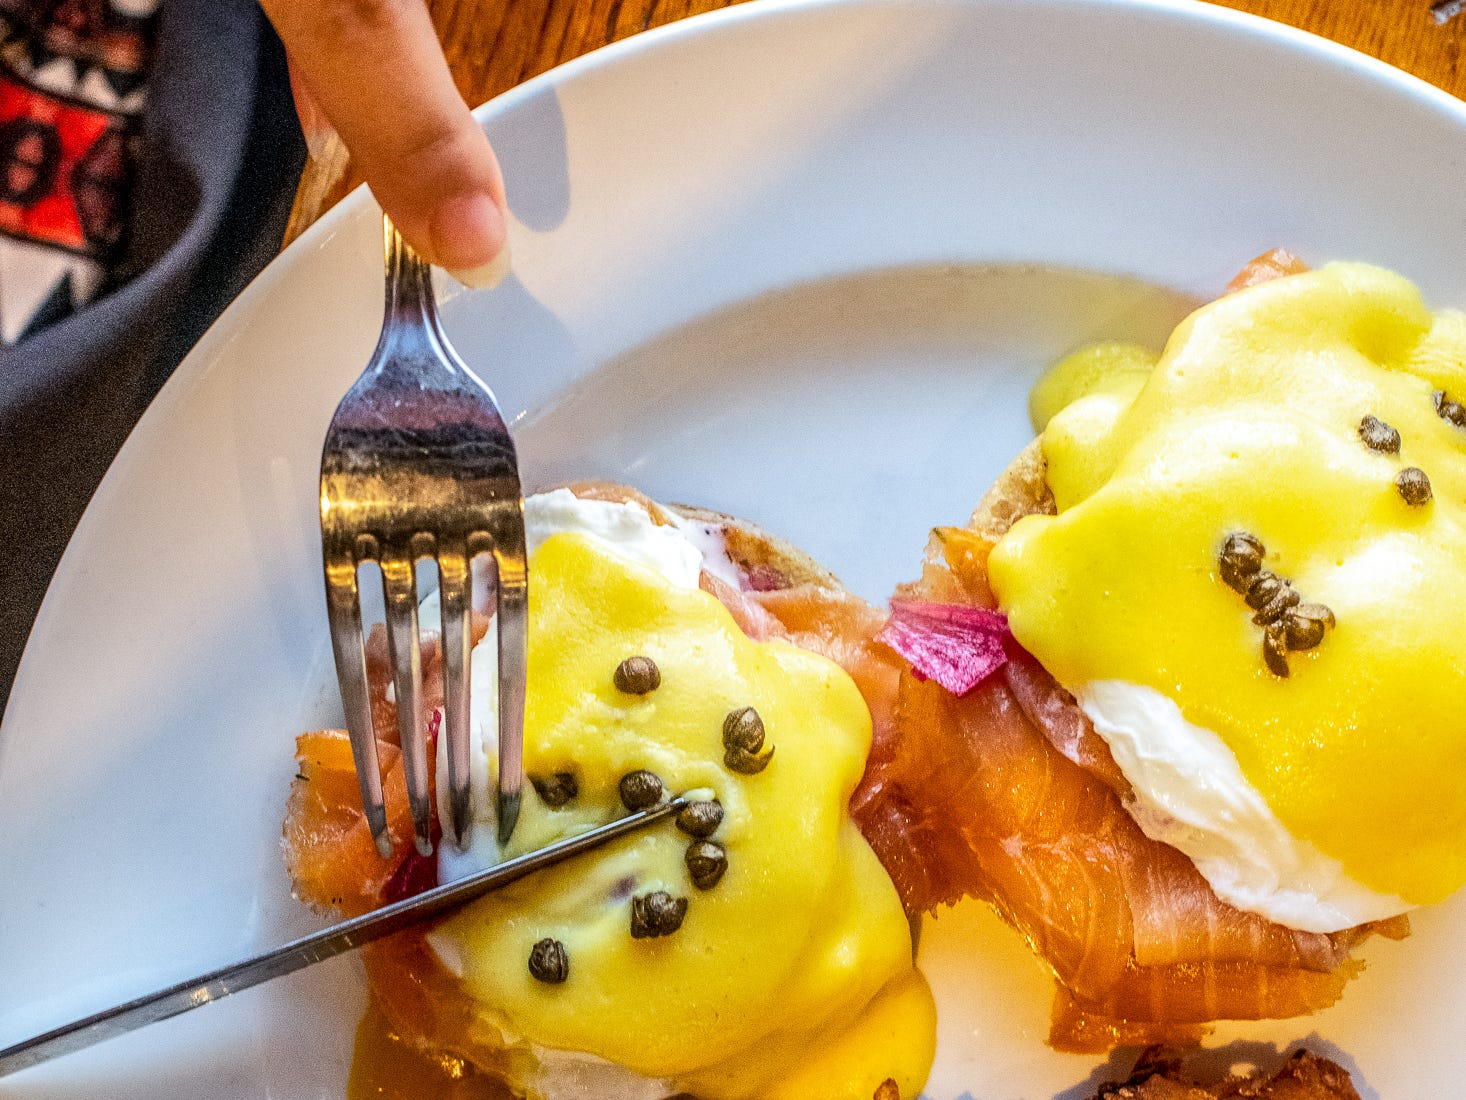 The new Royale Benedict is topped with smoked salmon, dill crème fraîche, pickled pearl onions, poached eggs, house hollandaise and fried capers.